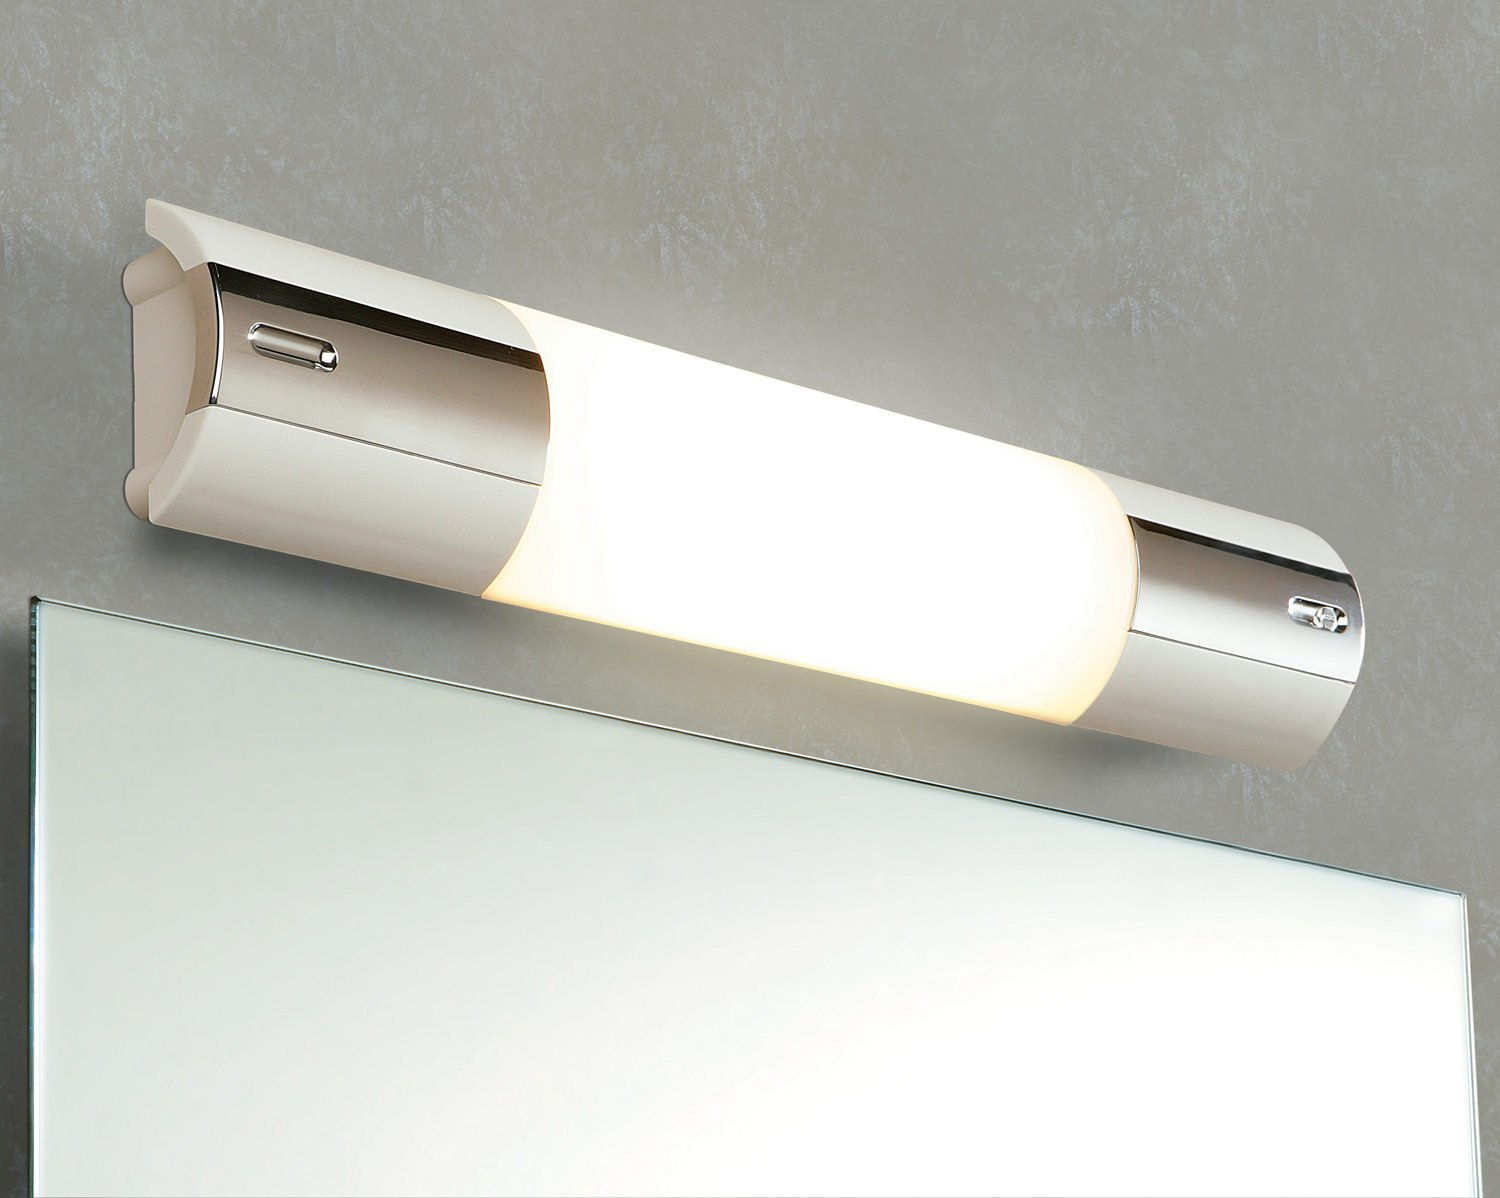 White And Chrome Bathroom Shaver Light With: HIB Shavolite Mirror Light With Shaver Socket